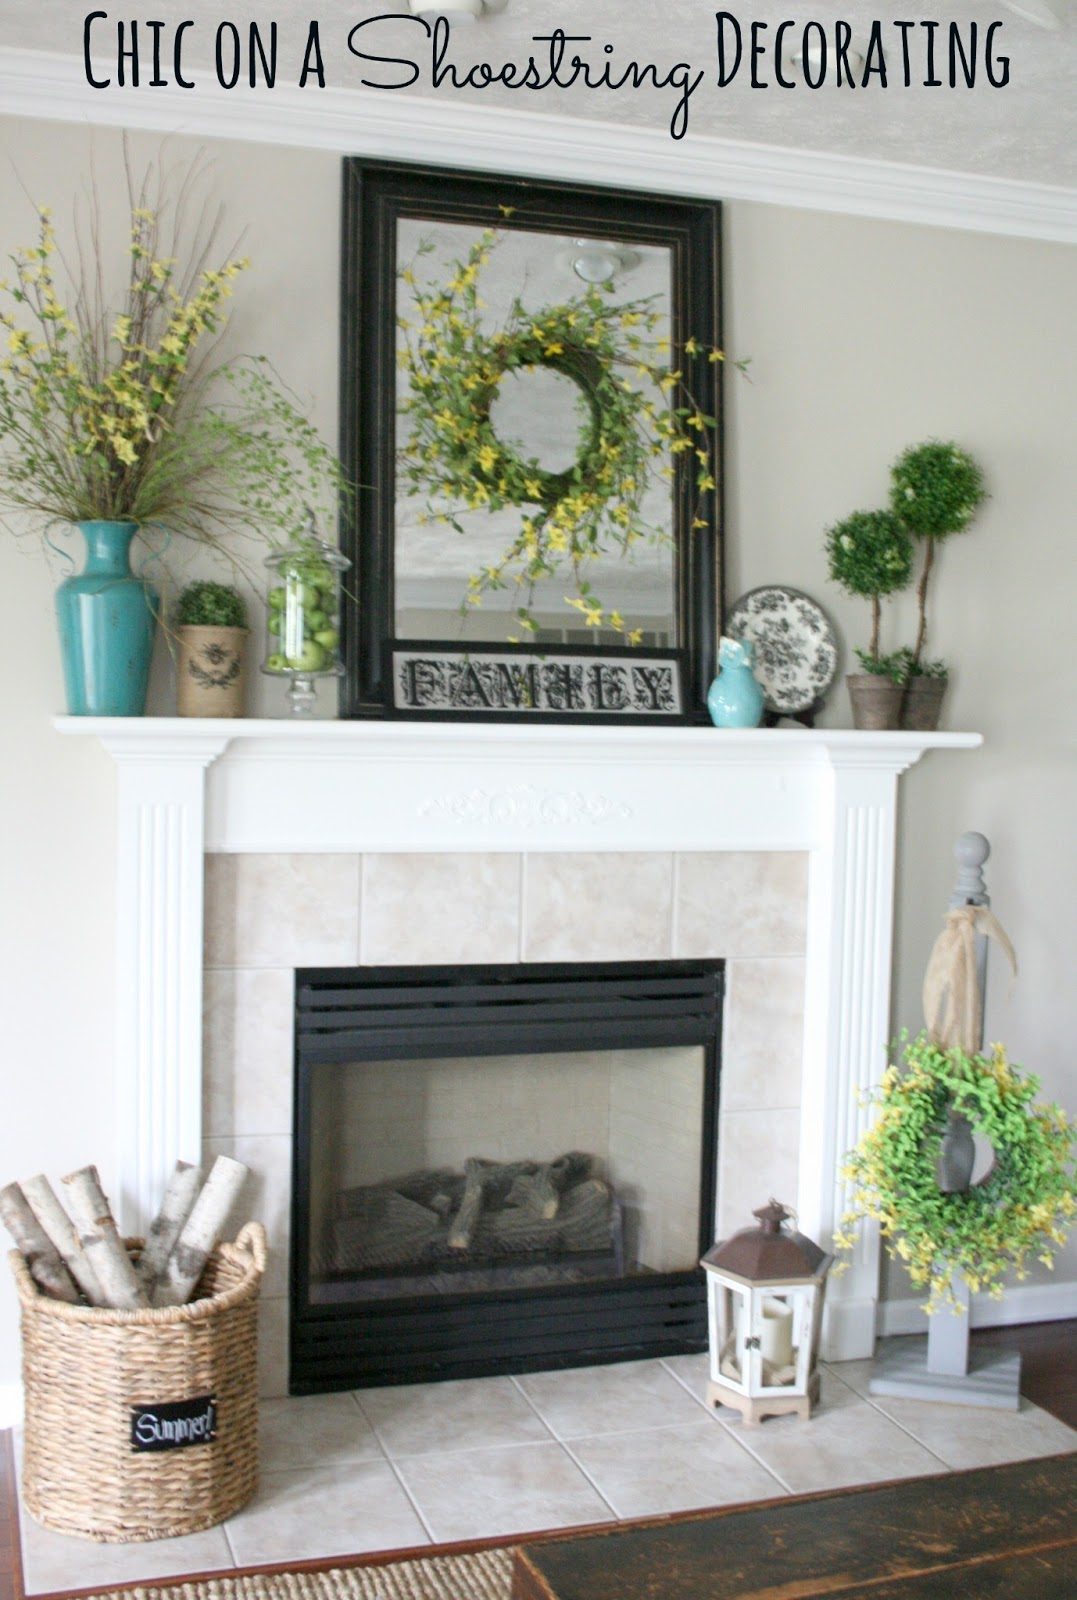 Mantel Decorating Ideas For The Holidays: Chic On A Shoestring Decorating: Summer Mantel Featuring